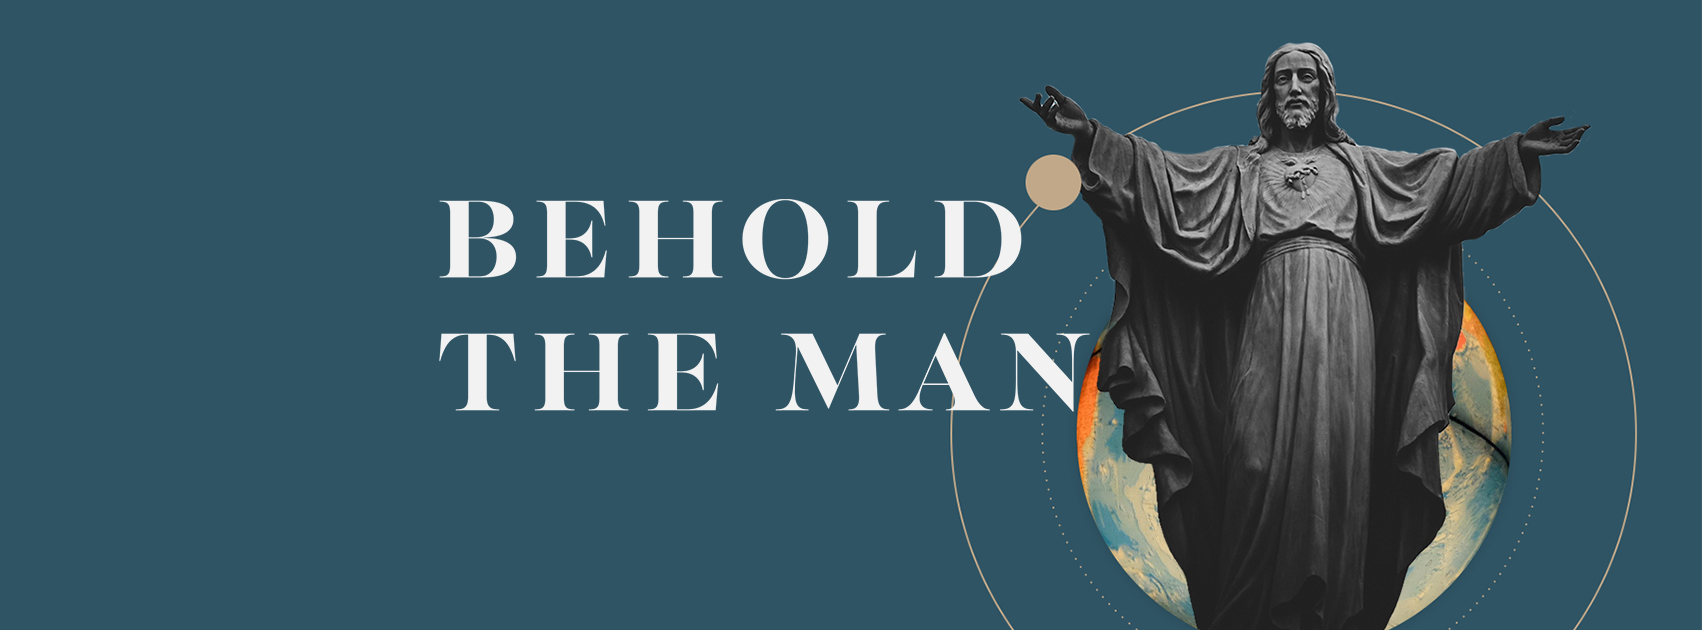 Behold the Man FB Cover Photo.jpg